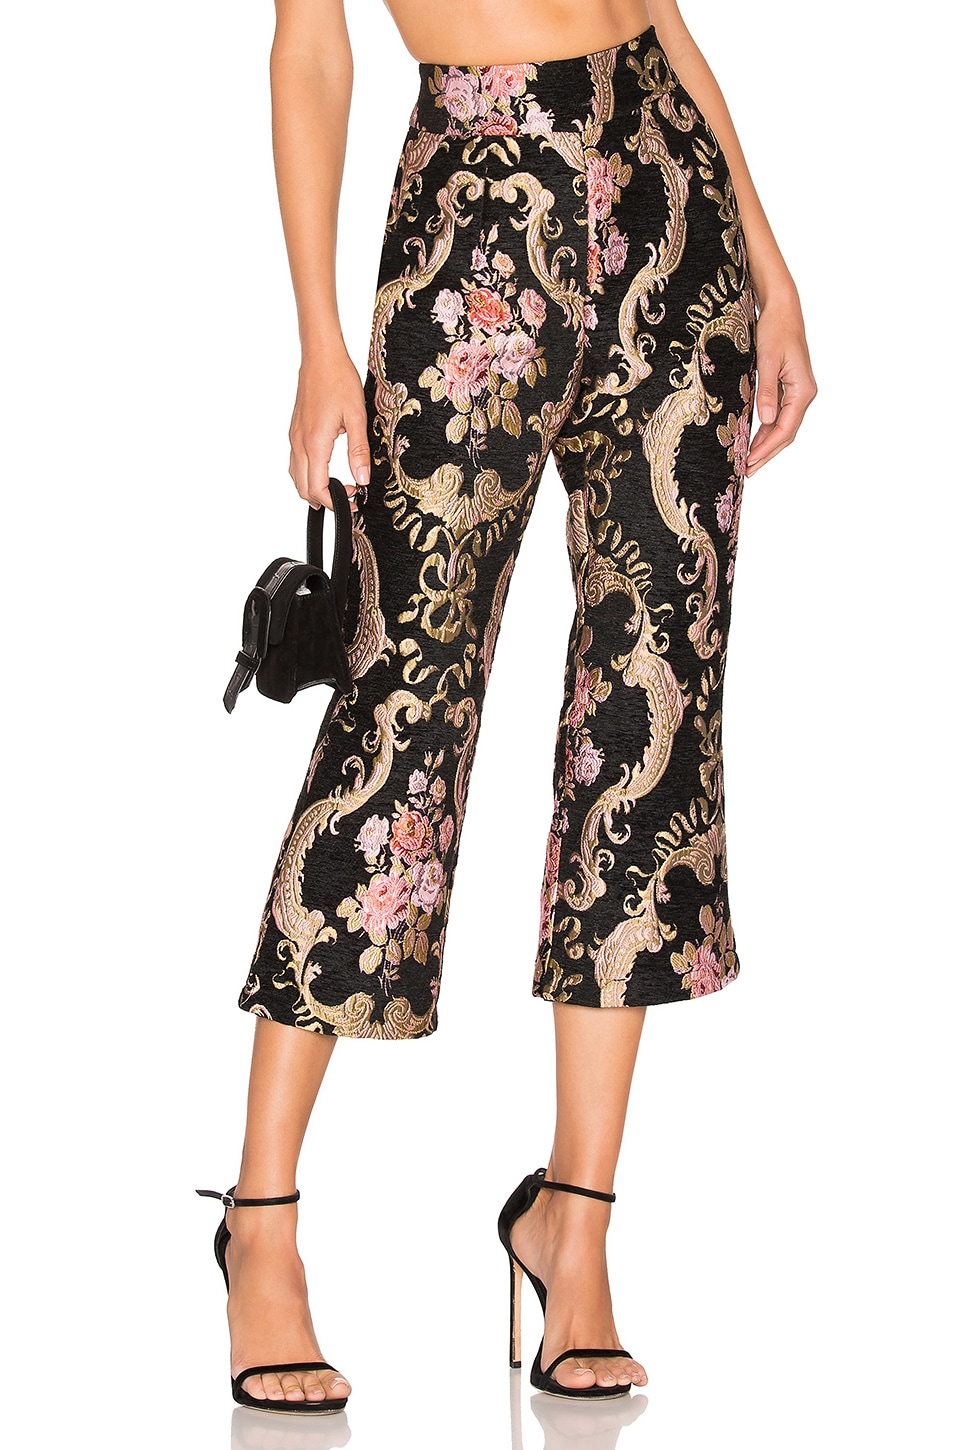 For Love & Lemons Brocade Flared Pant in Black Floral